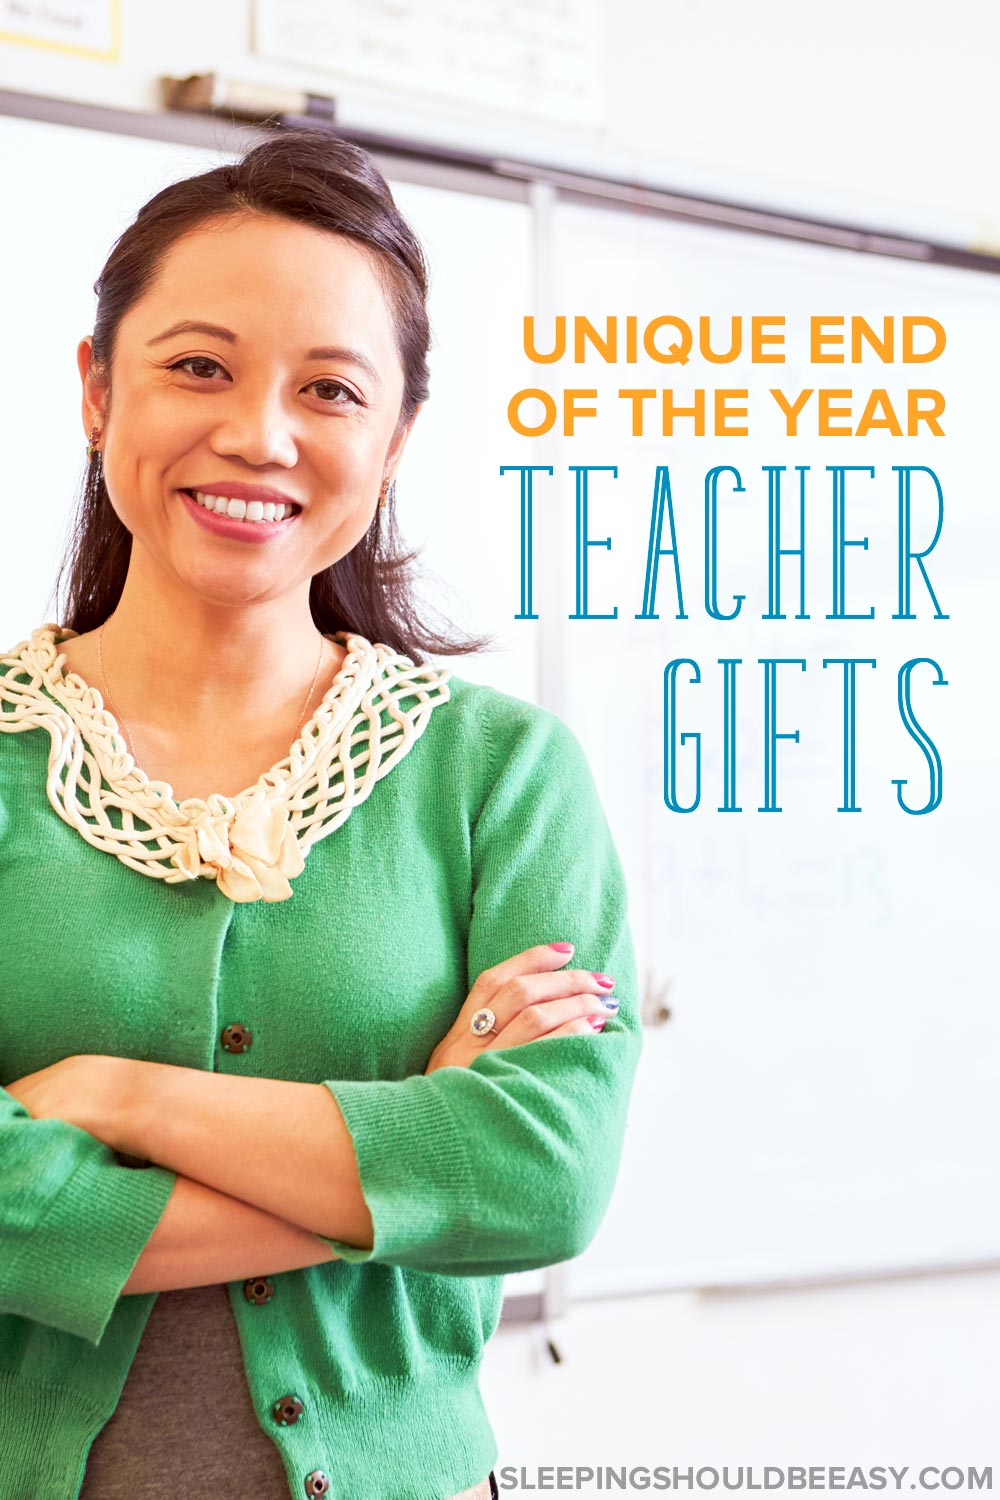 Smiling teacher: End of the year teacher gifts